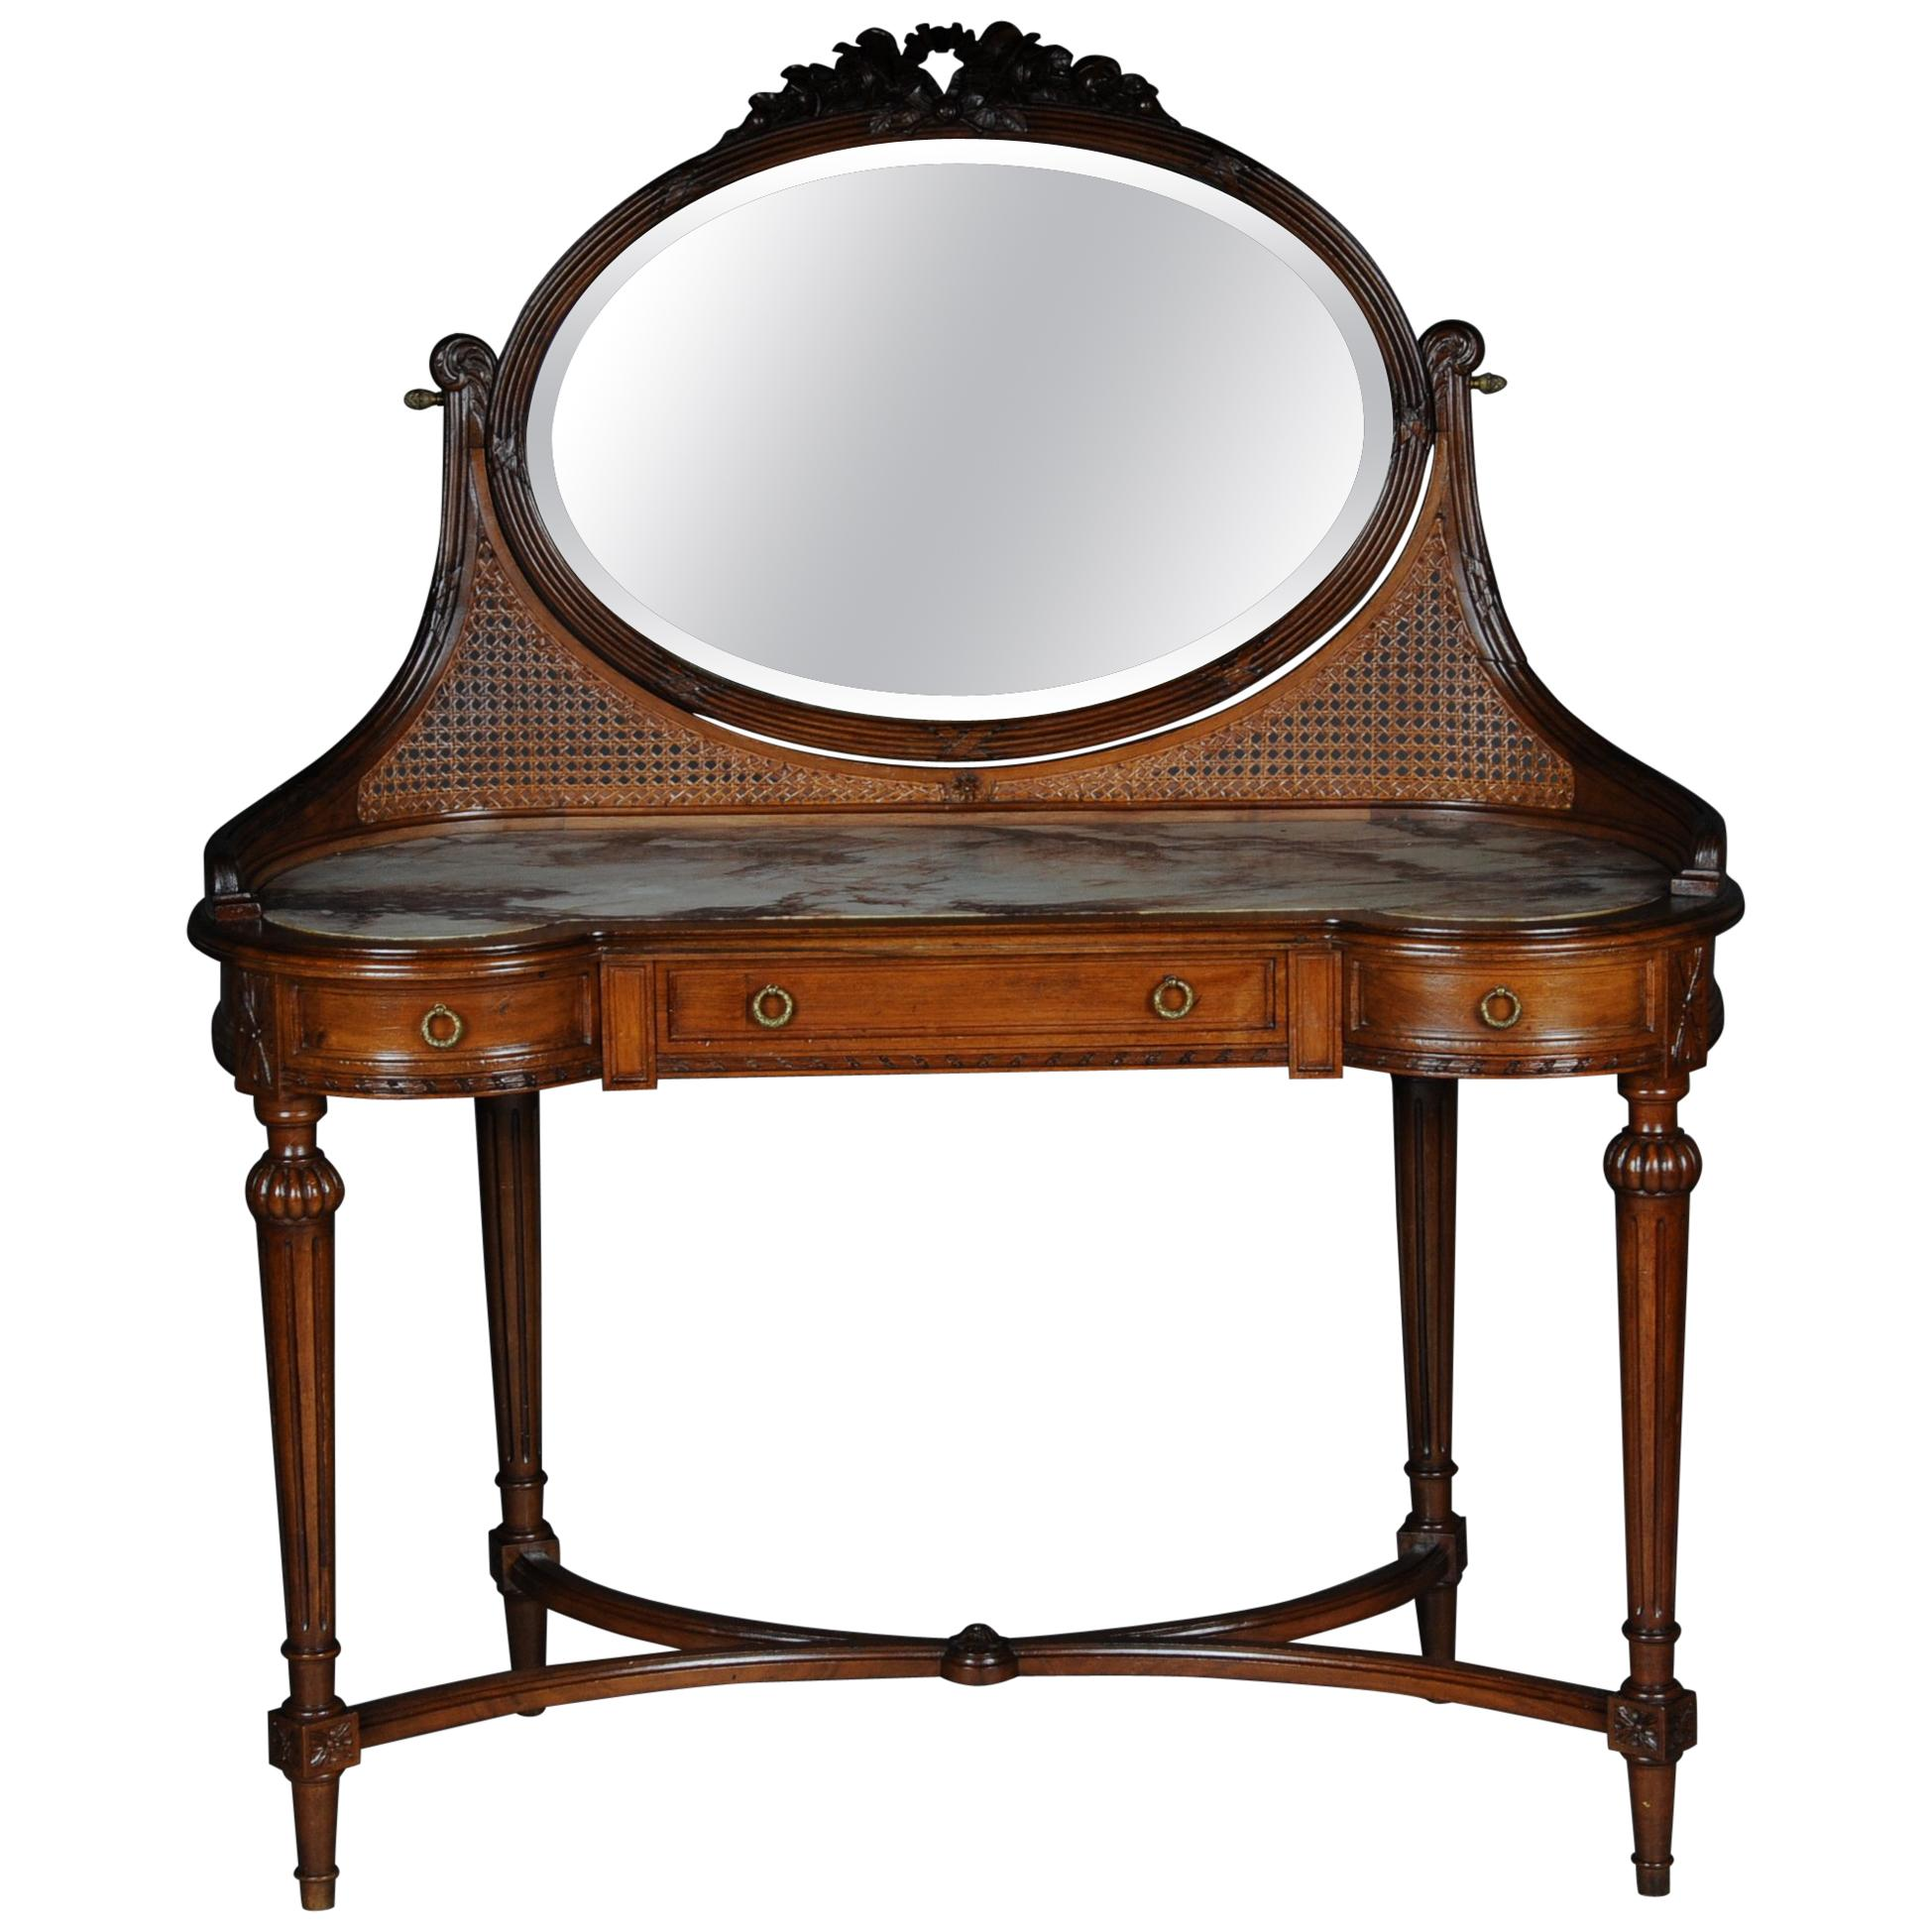 Genial French Dressing Table / Vanity Table With Mirror Classicism For Sale